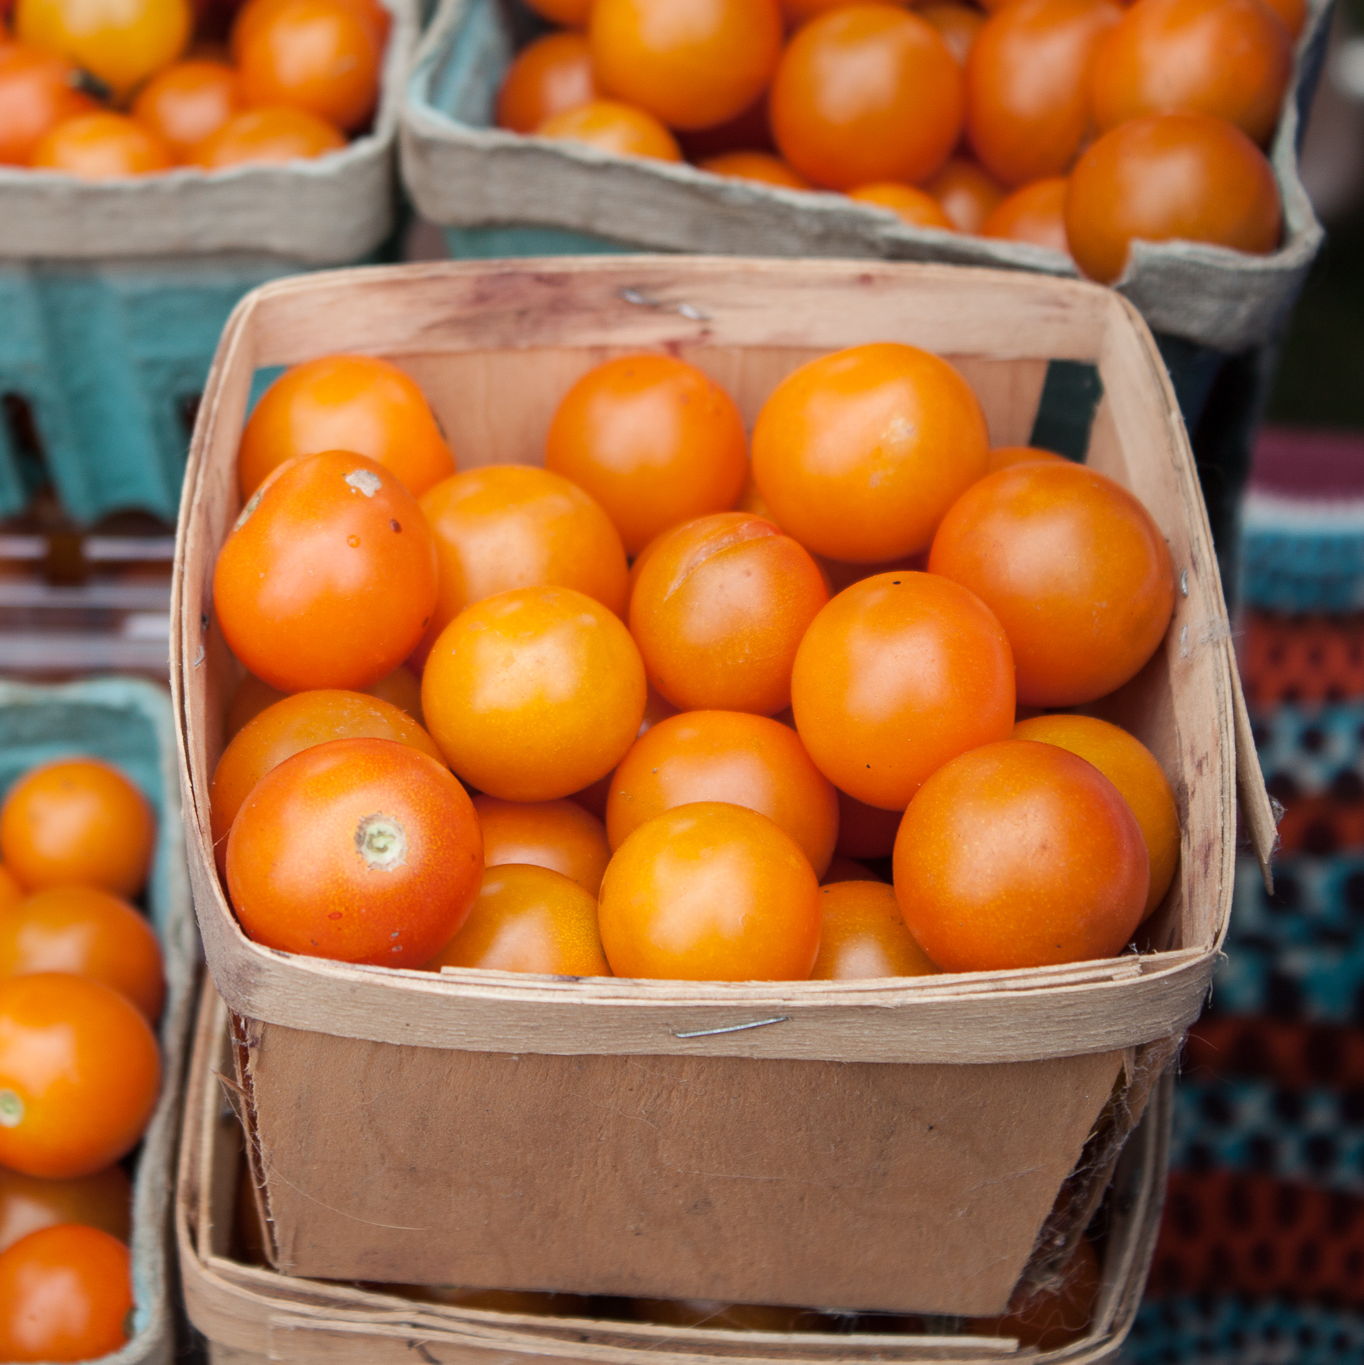 Sungold tomatoes.jpg